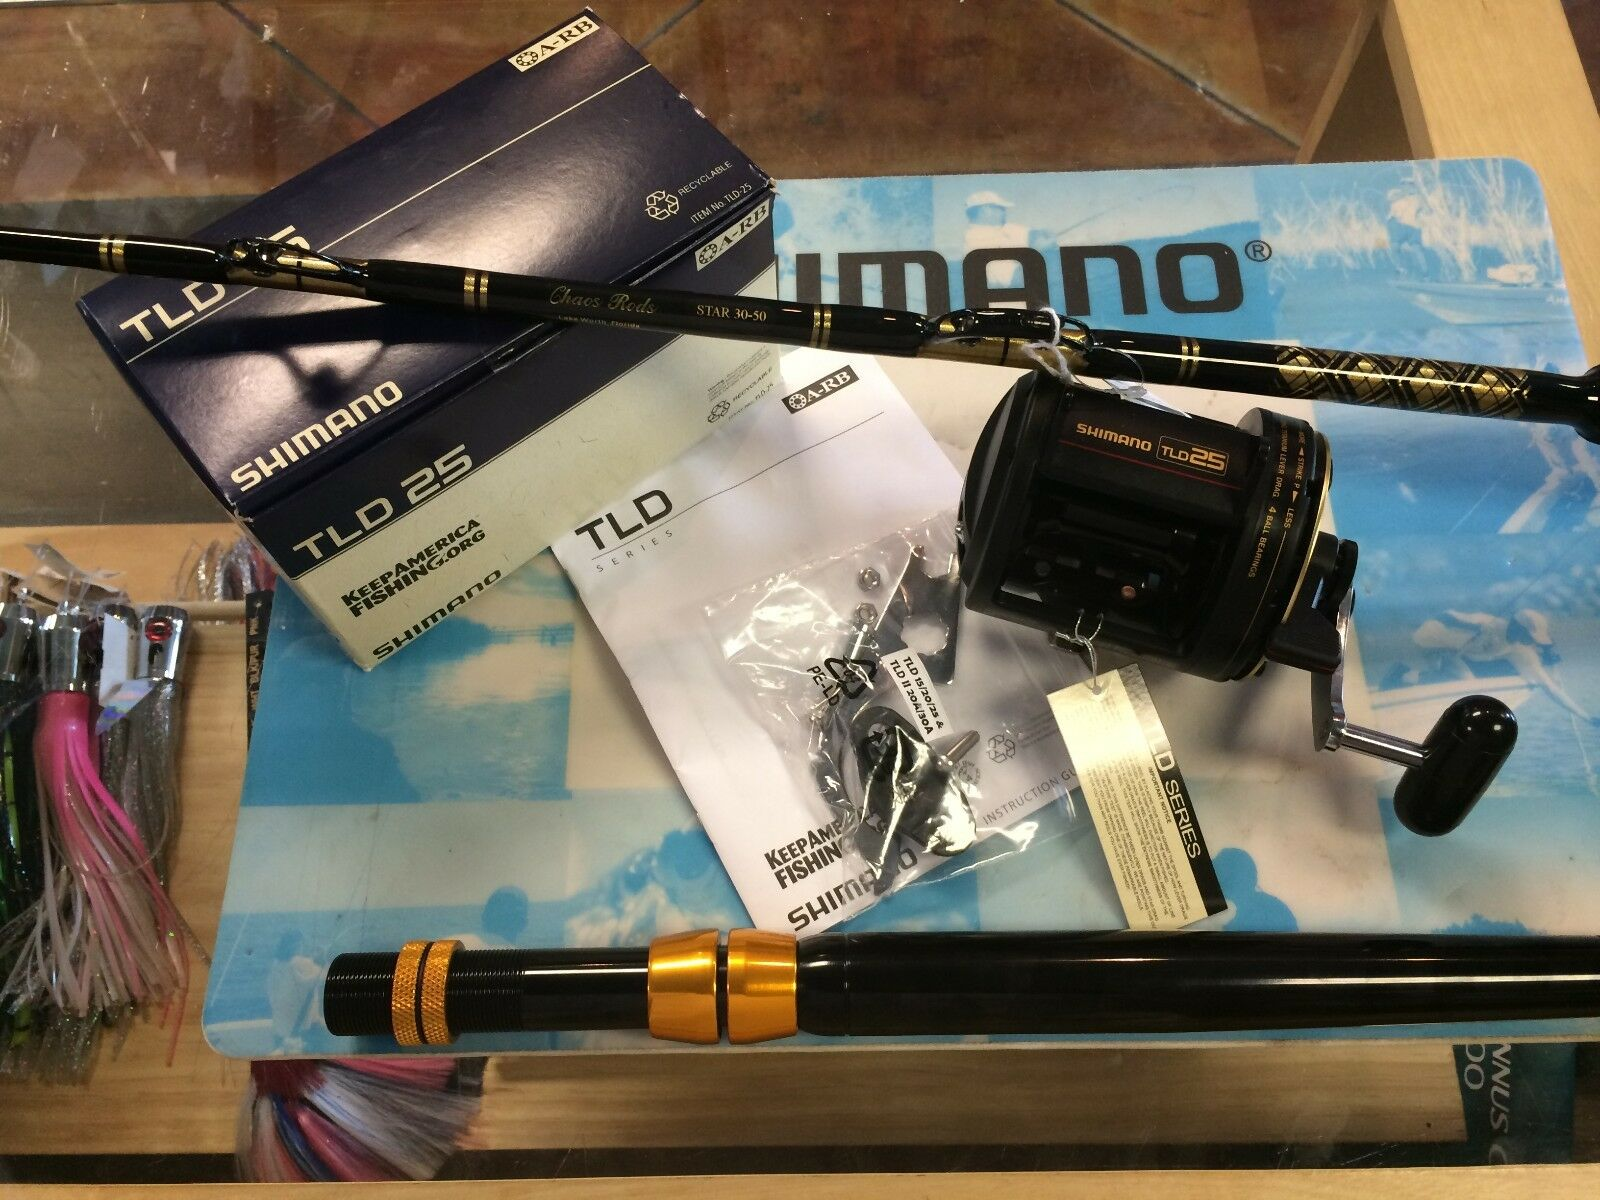 Shimano TLD 25 Conventional Reel wCHAOS STAR 30 AFTCO Roller Rod Combo